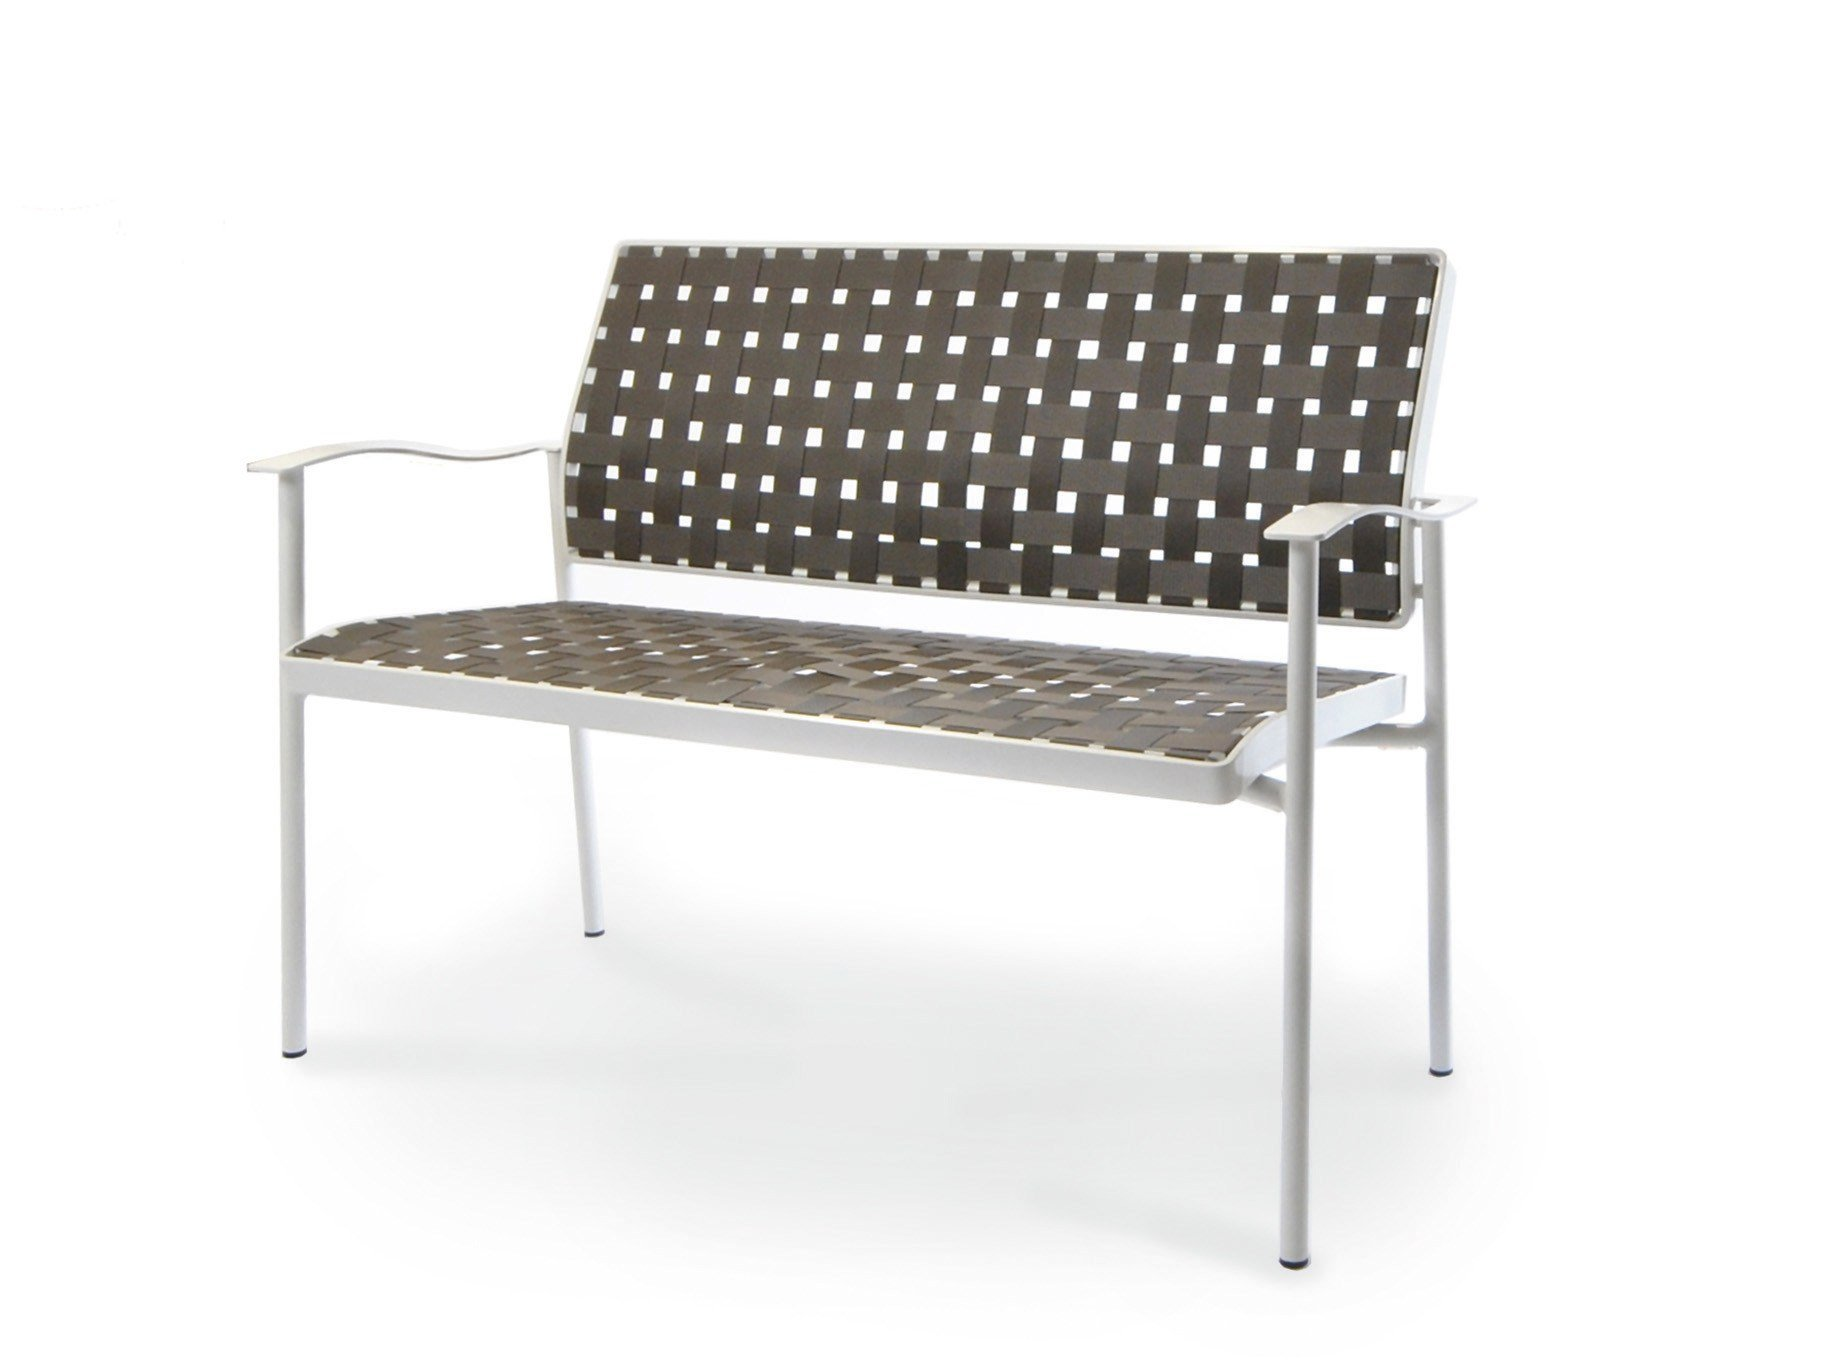 nizza garden bench by fischer m bel design martin dettinger. Black Bedroom Furniture Sets. Home Design Ideas